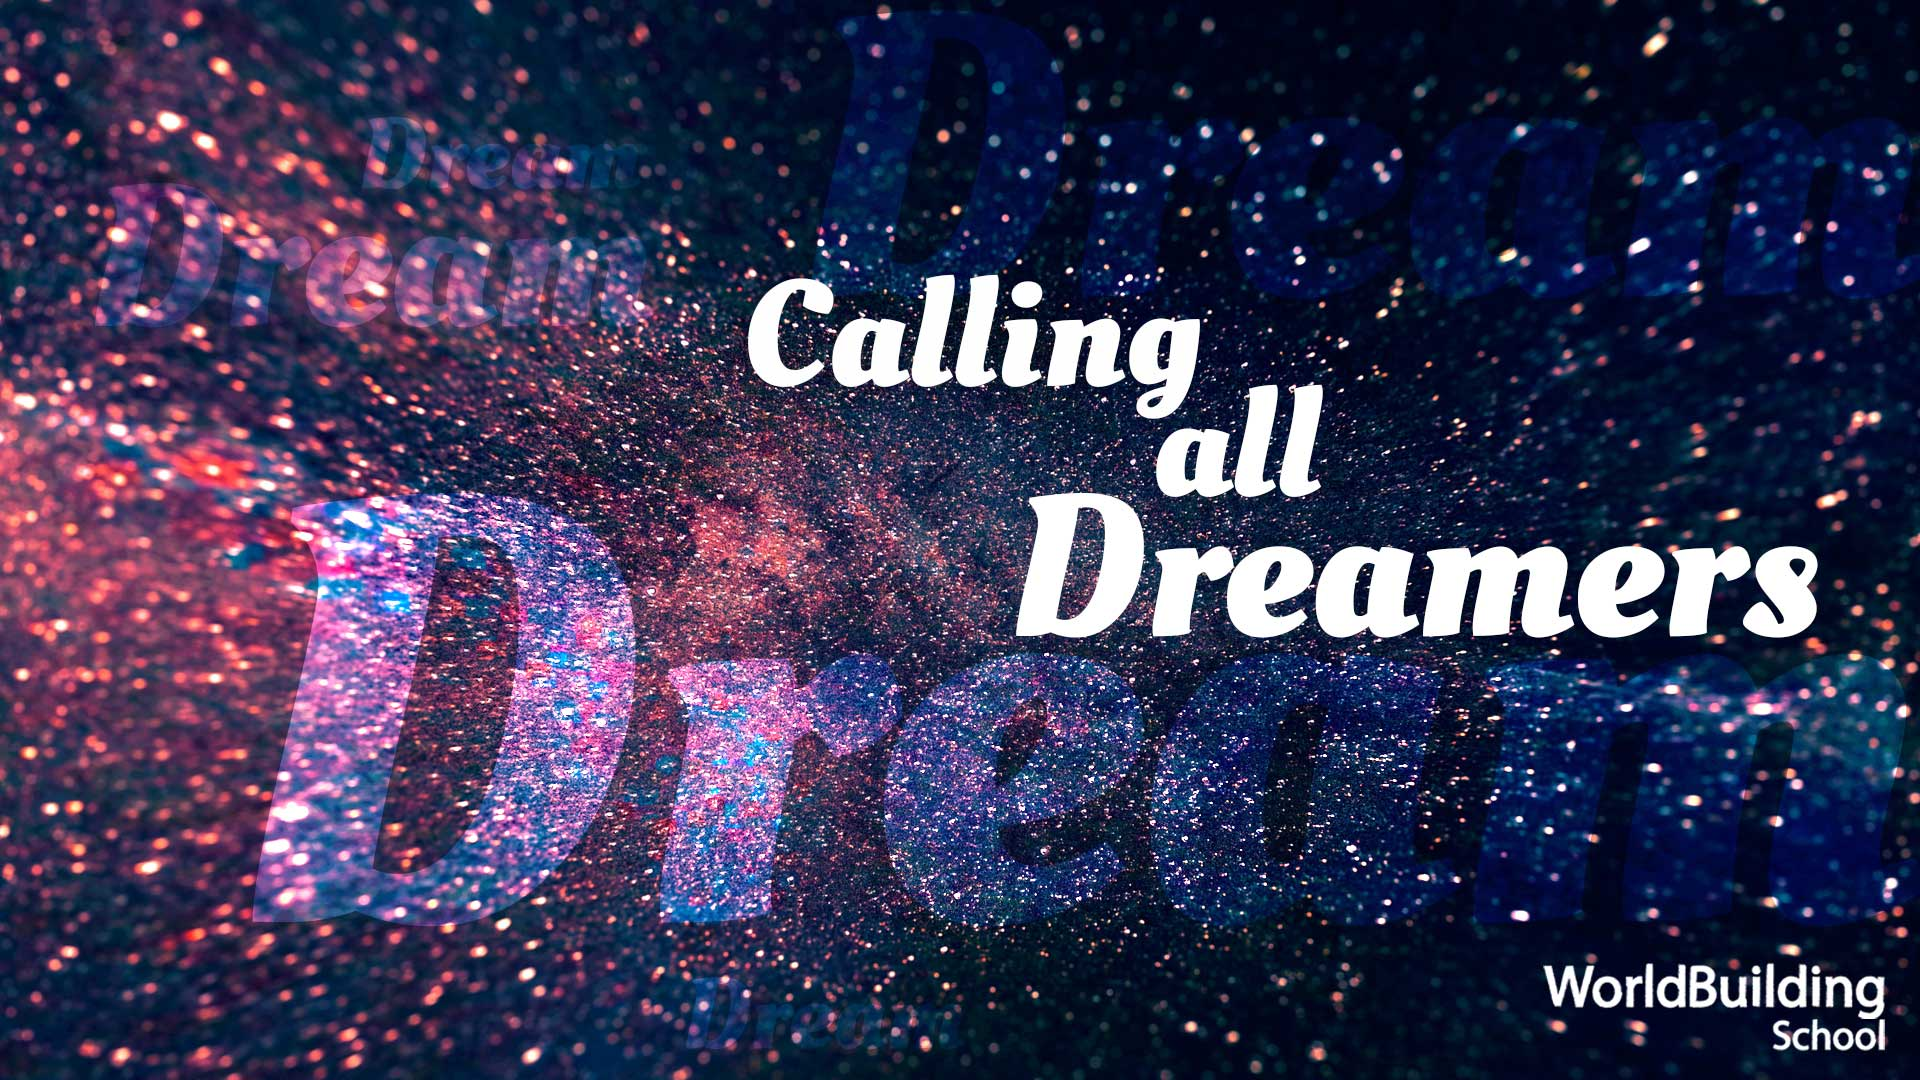 Calling all dreamers